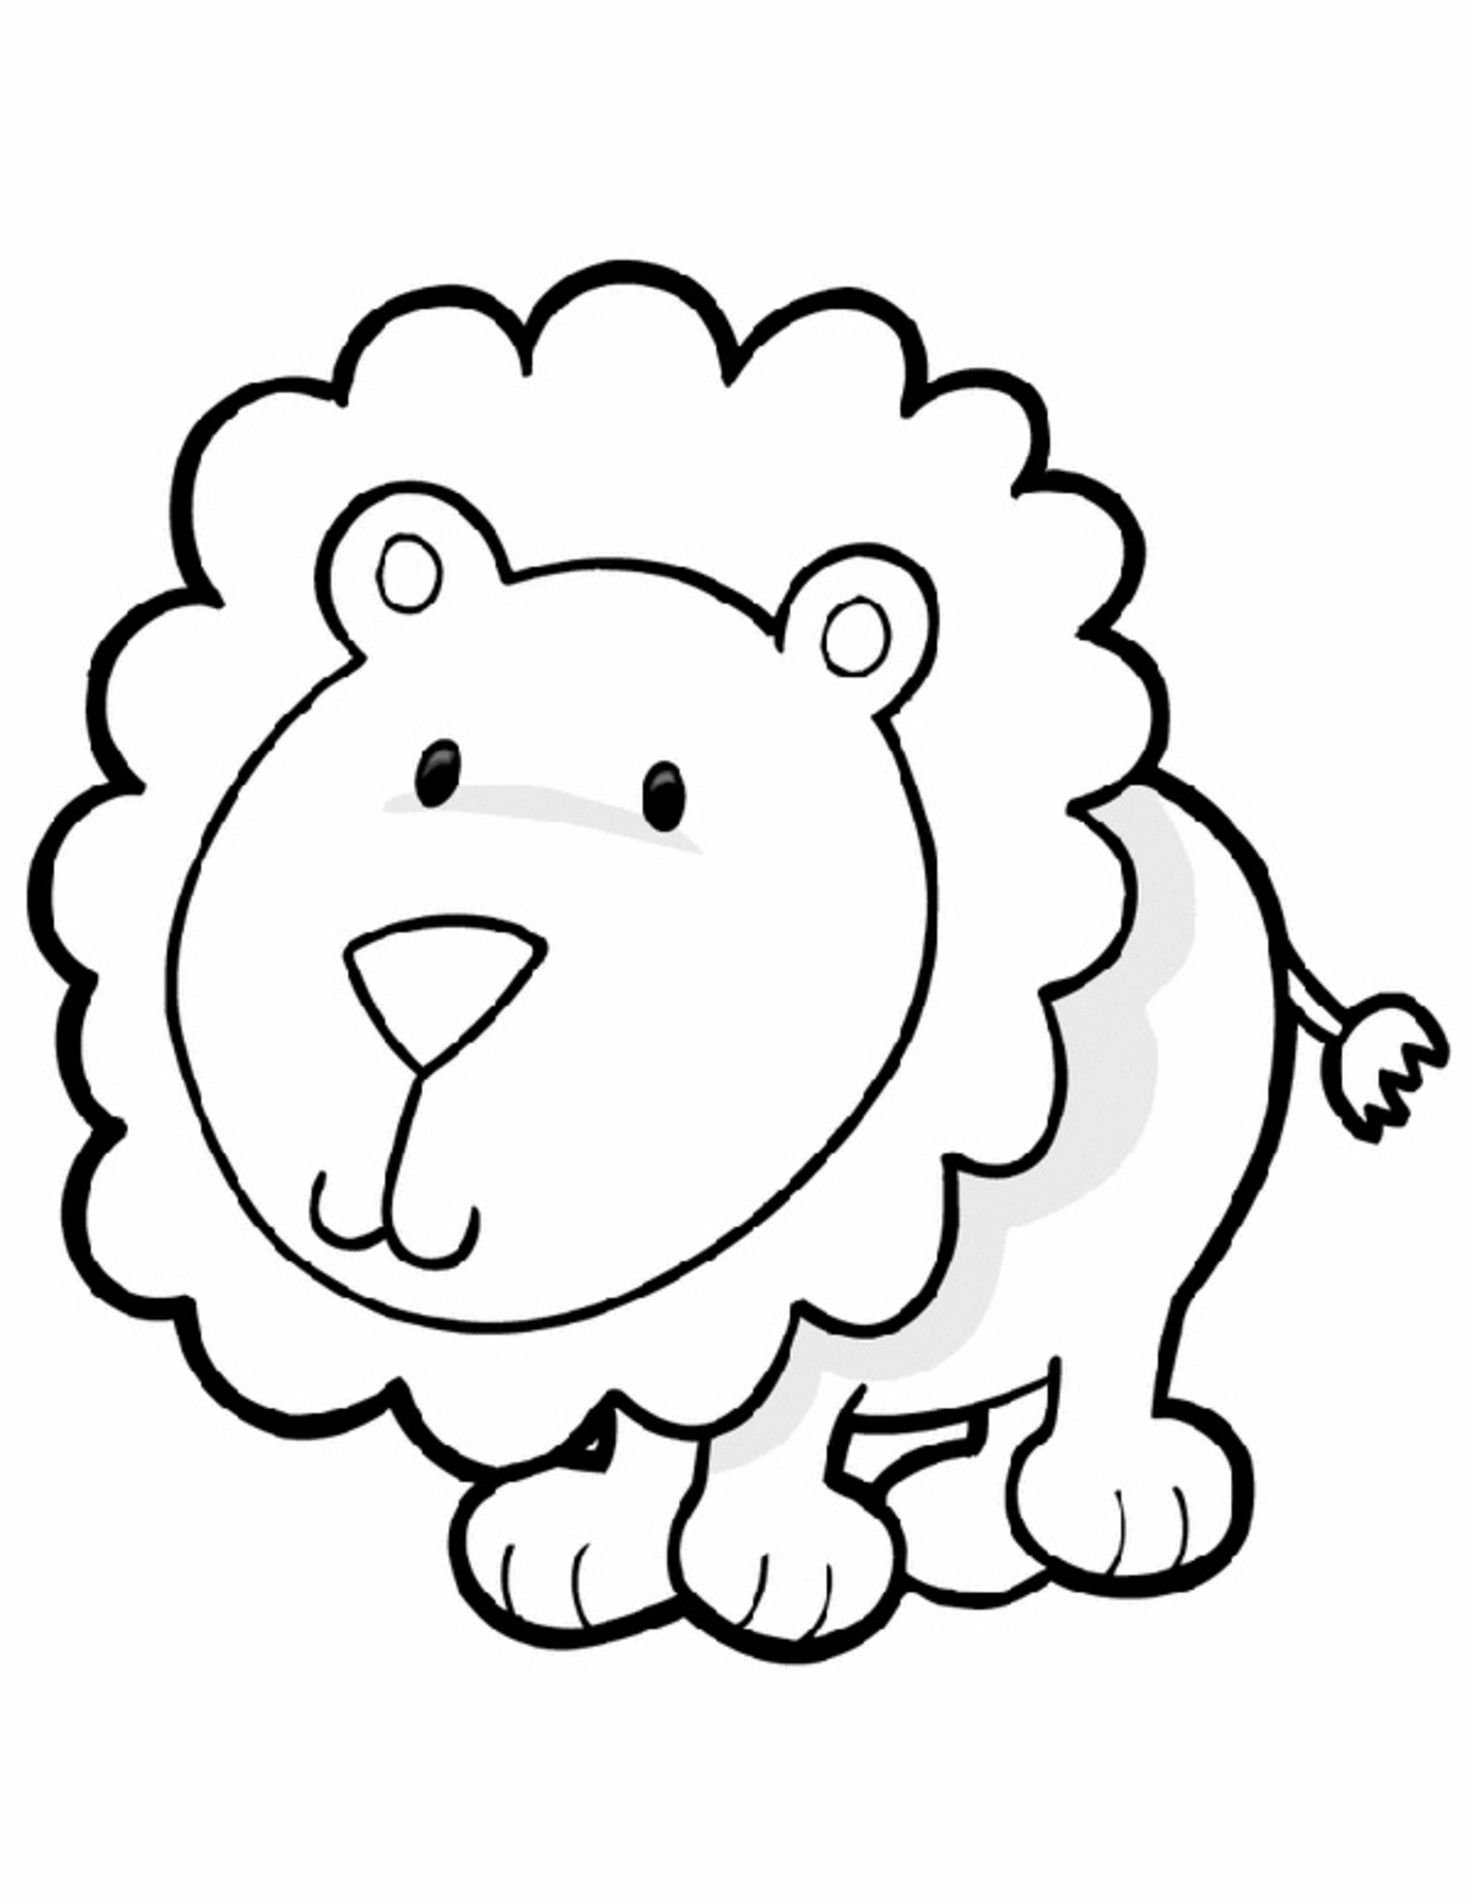 1000 images about Jungle Animal Coloring Pages on Pinterest